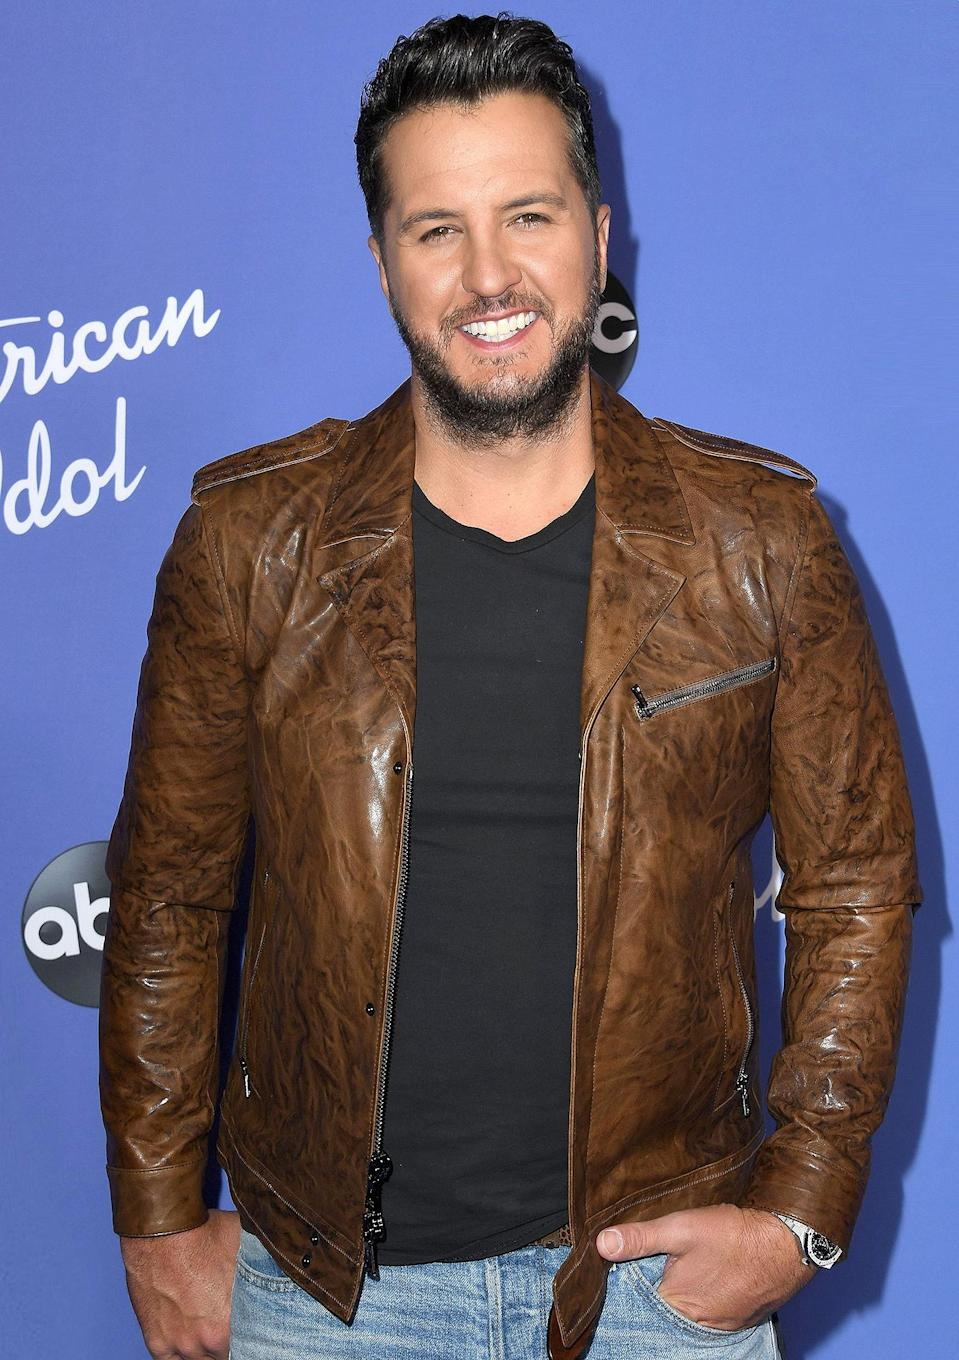 "<p>Other familiar faces missing from this year's show are <a href=""https://people.com/country/luke-bryan-tests-positive-for-covid-misses-first-american-idol-live-show/"" rel=""nofollow noopener"" target=""_blank"" data-ylk=""slk:Luke Bryan"" class=""link rapid-noclick-resp"">Luke Bryan</a> (pictured) and <a href=""https://people.com/country/little-big-town-phillip-sweet-tests-positive-for-covid-skipping-acm-awards/"" rel=""nofollow noopener"" target=""_blank"" data-ylk=""slk:Little Big Town's Philip Sweet"" class=""link rapid-noclick-resp"">Little Big Town's Philip Sweet</a>, both of whom have tested positive for COVID-19. Sweet's band members gave an update on his health, sharing that ""he seems to be holding off the really bad stuff, just a little not feeling great,"" while Bryan announced that he's ""doing well and look forward to being back at it soon."" Bryan was originally slated to perform, but will be skipping the show while he recovers. </p>"